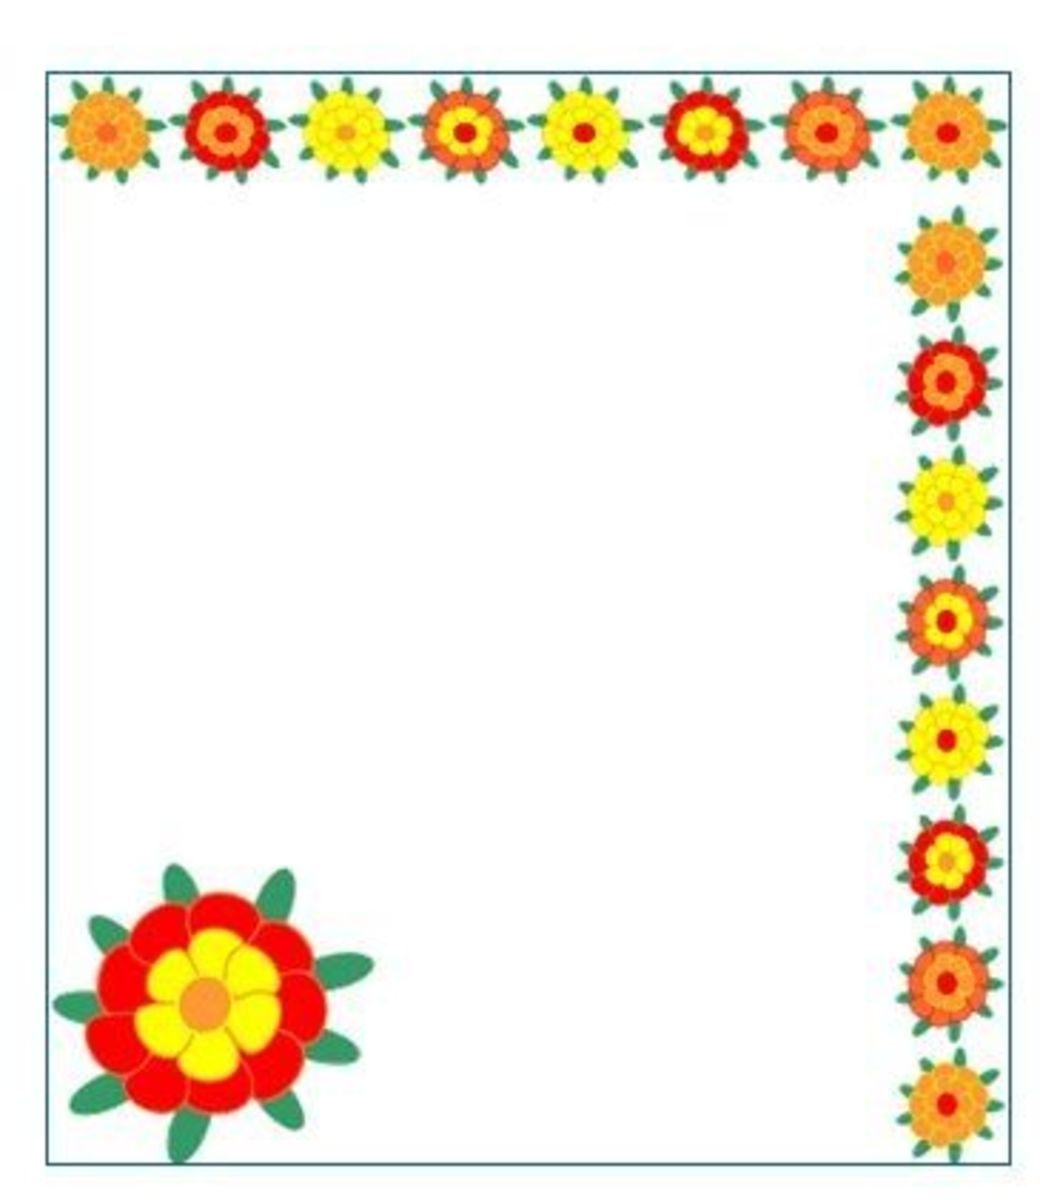 Clip art border sample, Mexican marigold flowers frame and blossom